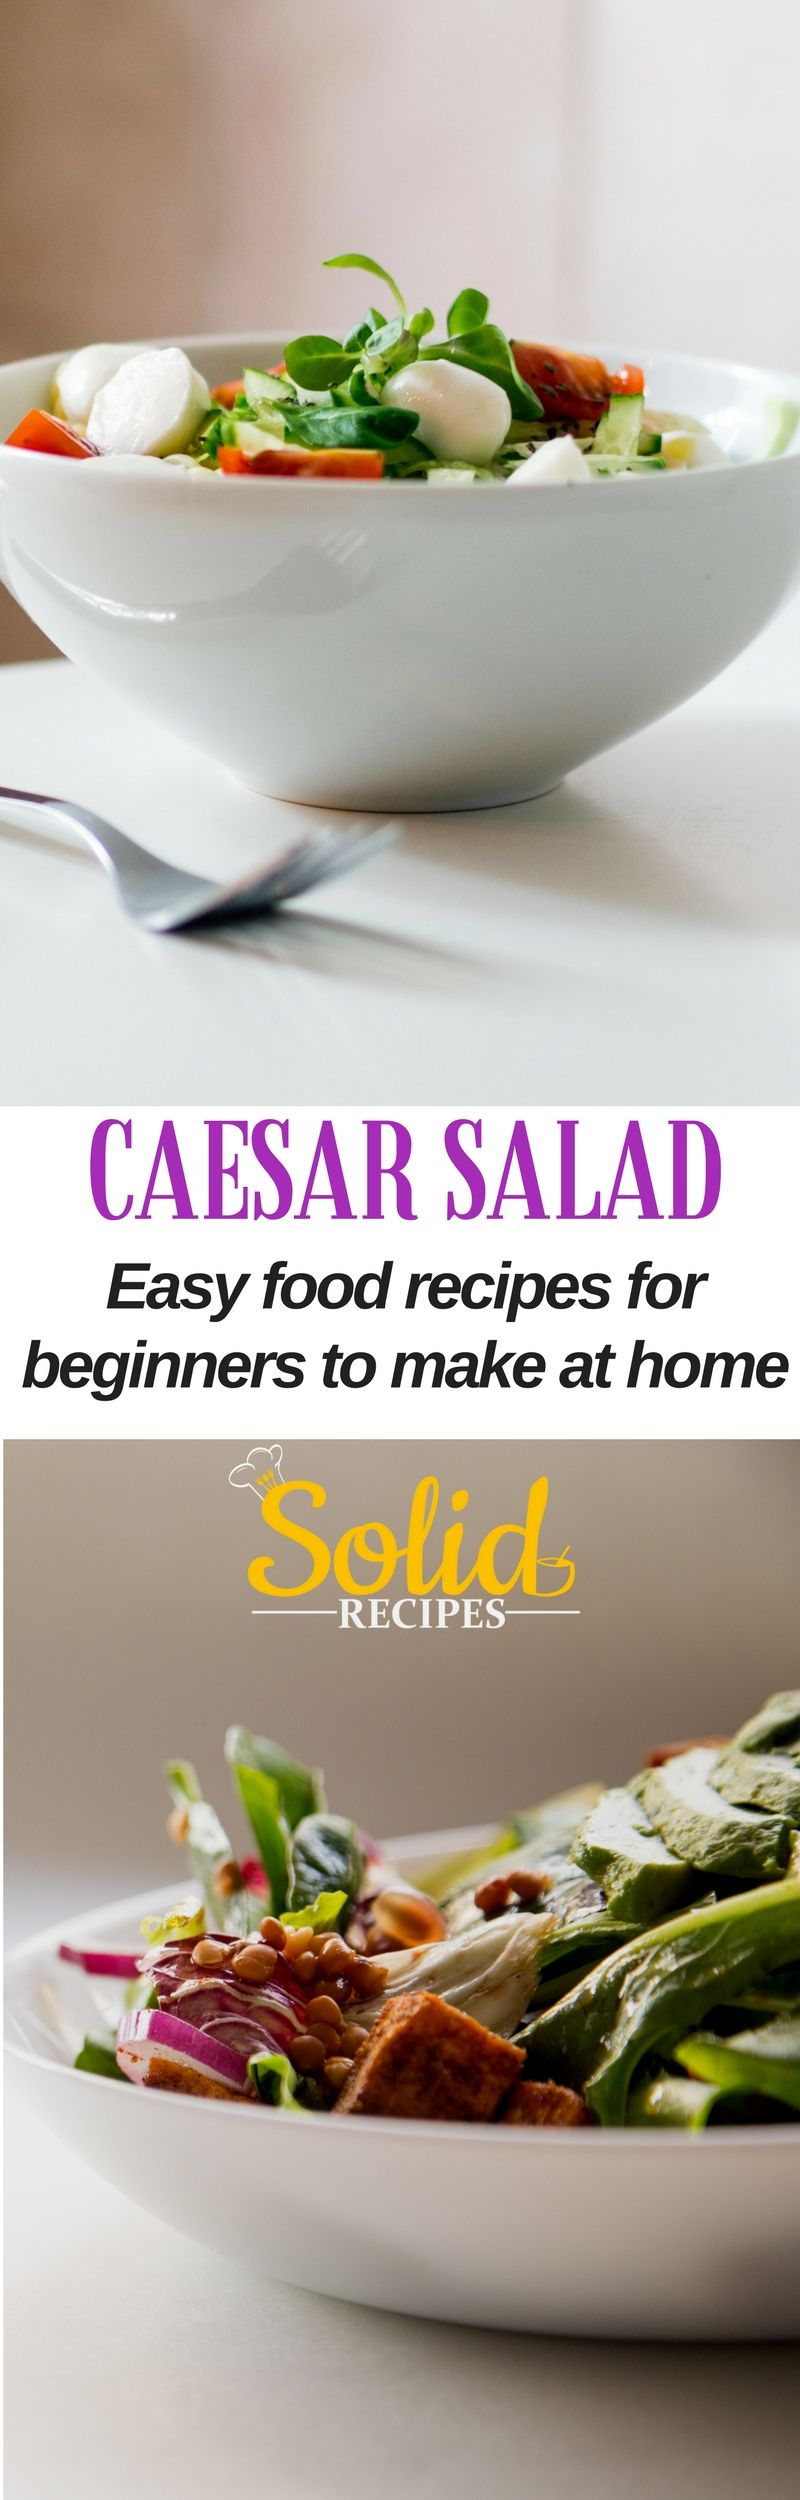 Caesar salad easy food recipes for beginners to make at home not caesar salad easy food recipes for beginners to make at home not always the photos matched the recipe caesar salad dressing caesar salad recipe forumfinder Gallery